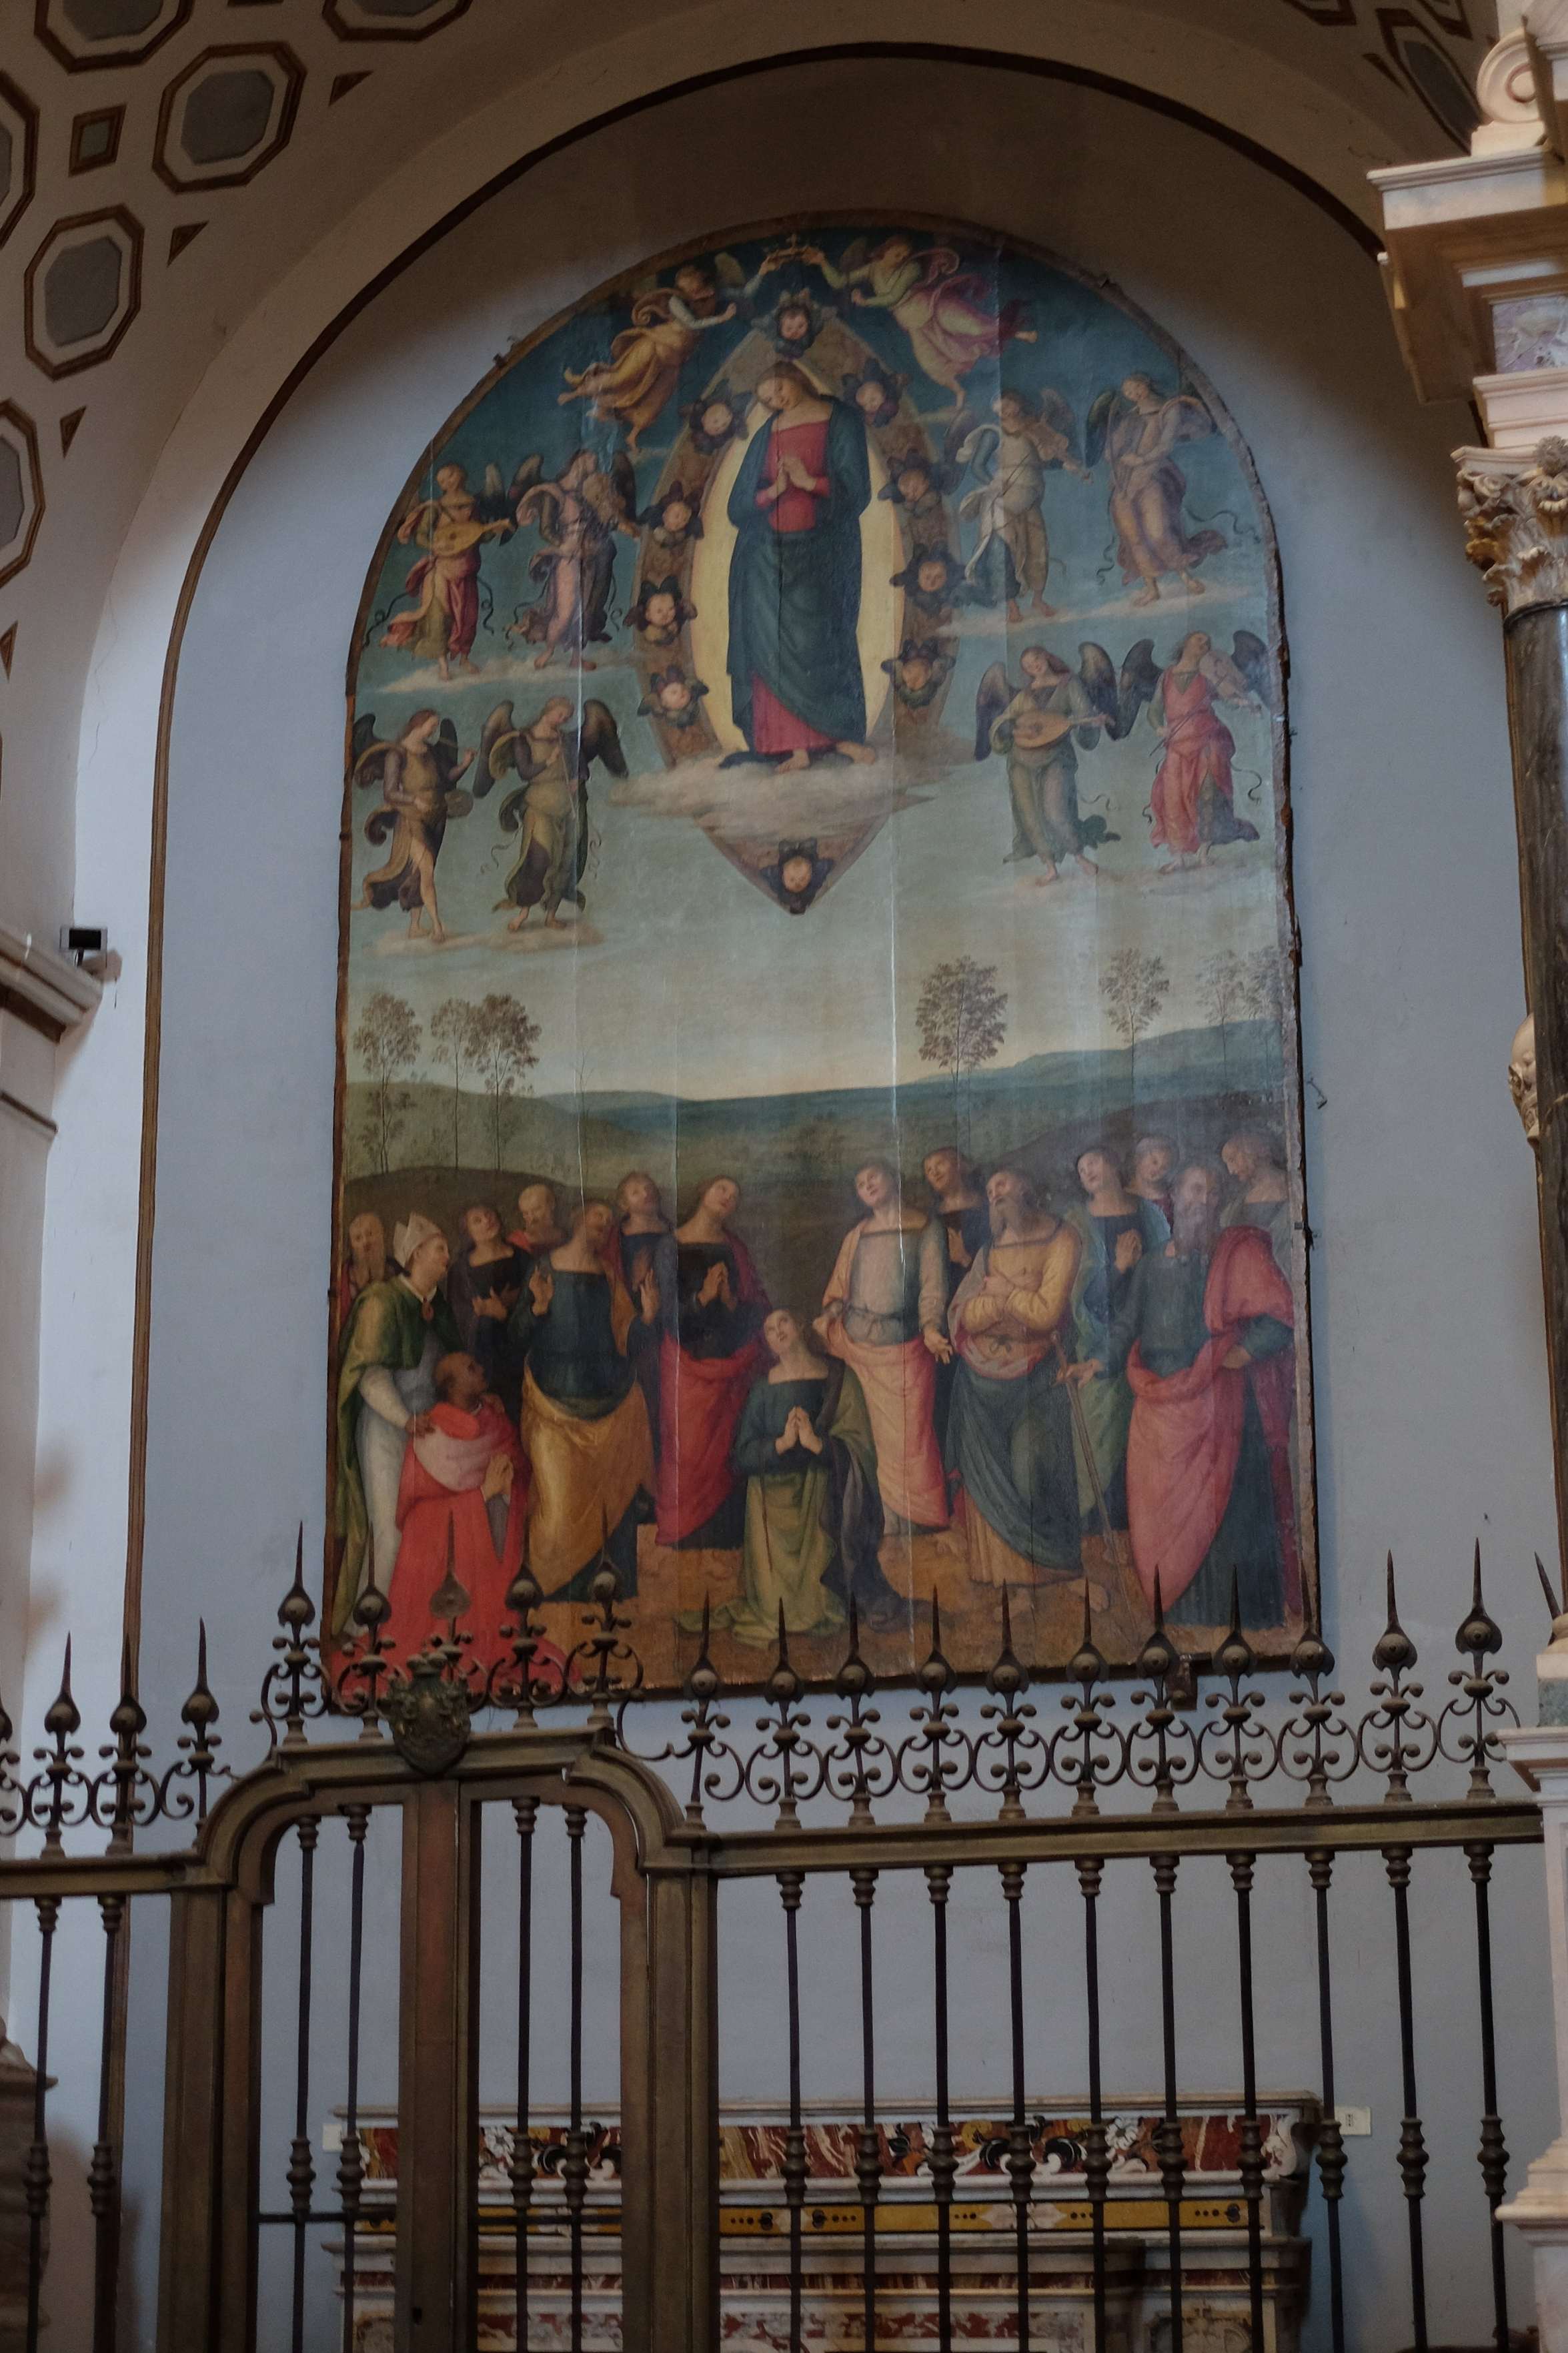 The altarpiece  Our Lady of Assumption  by Perugino.